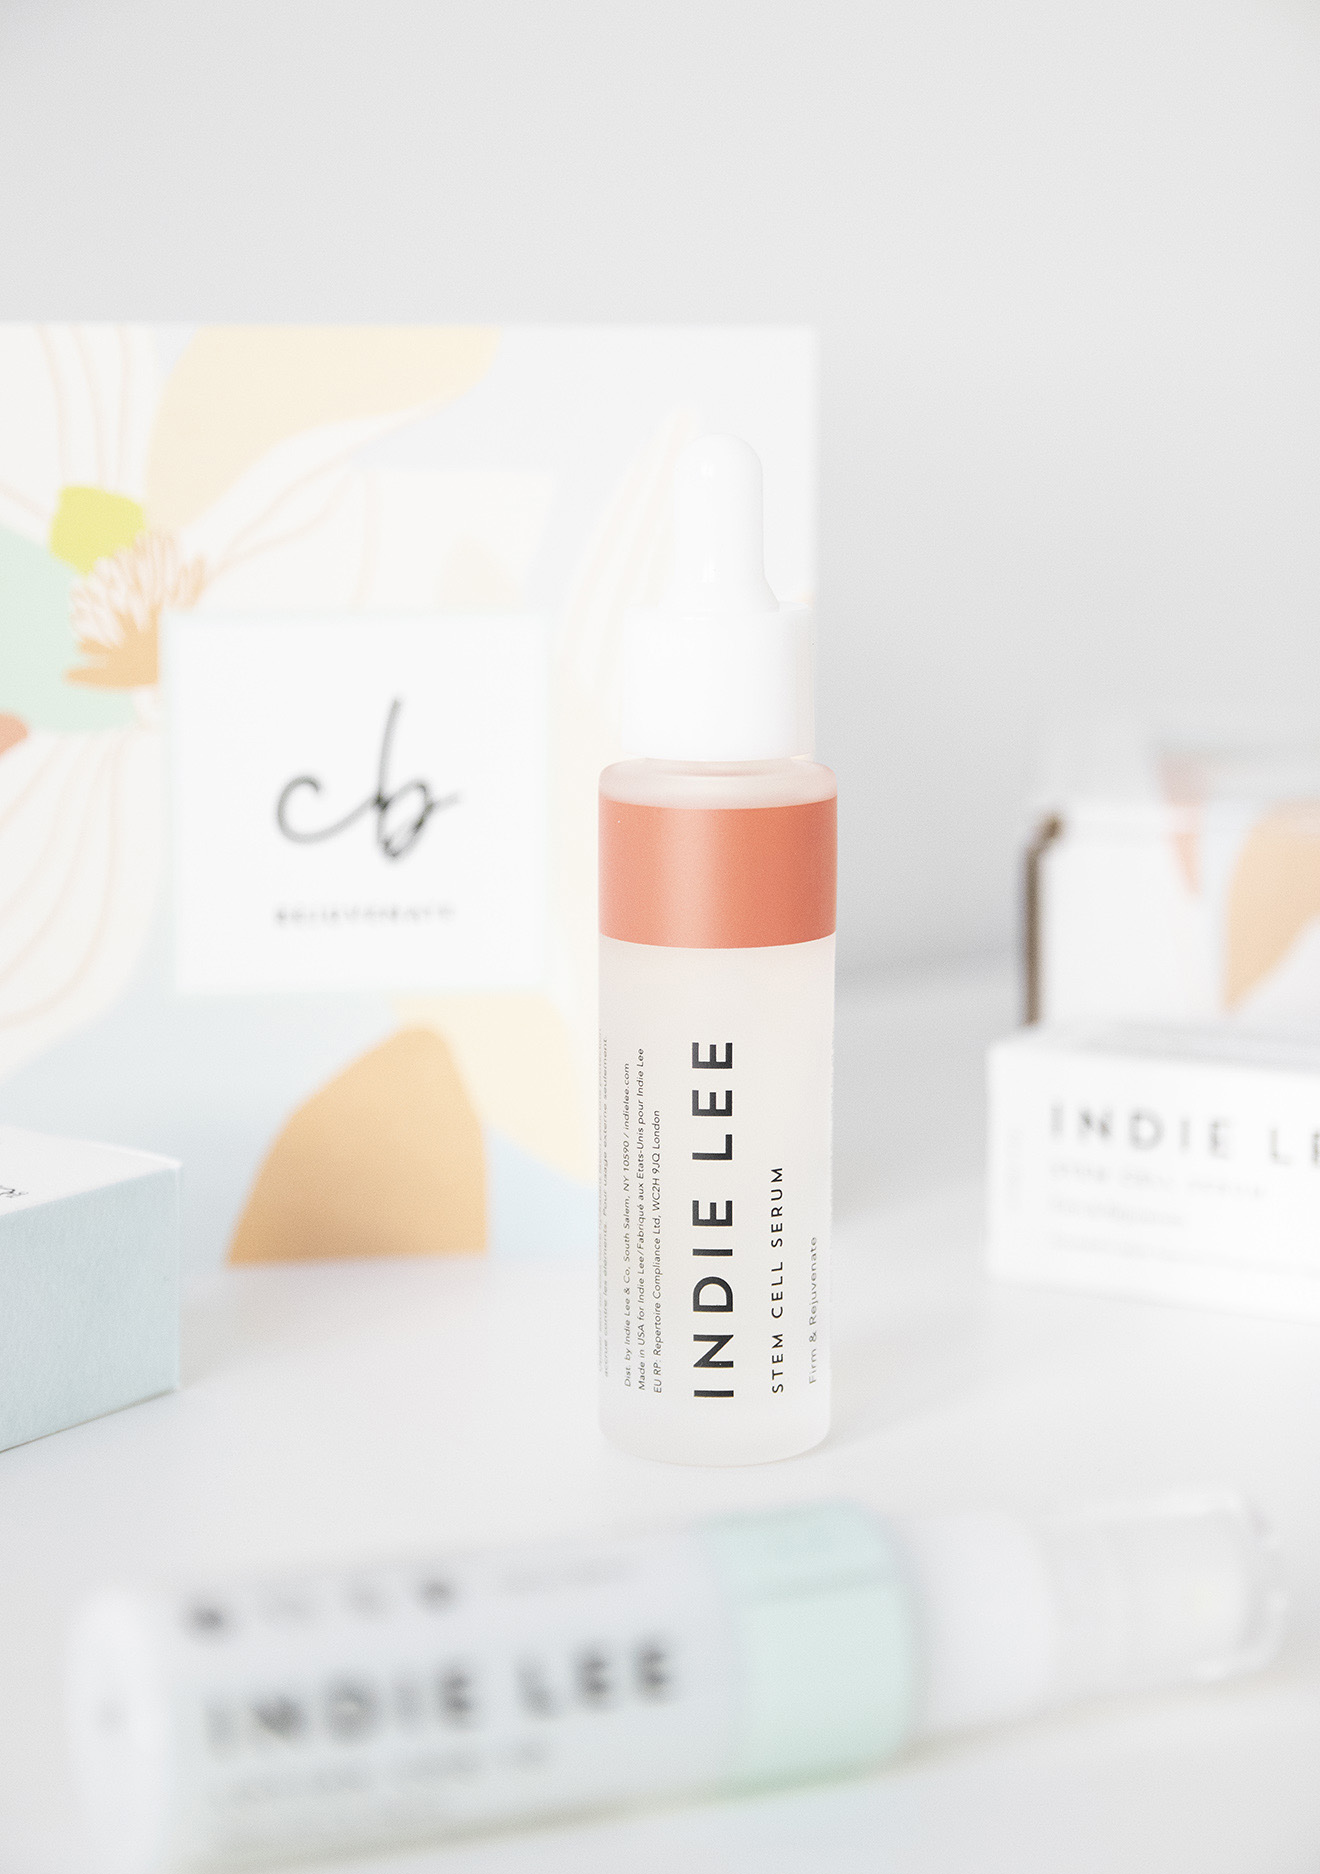 Indie Lee Stem Cell Serum Clean Beauty Box